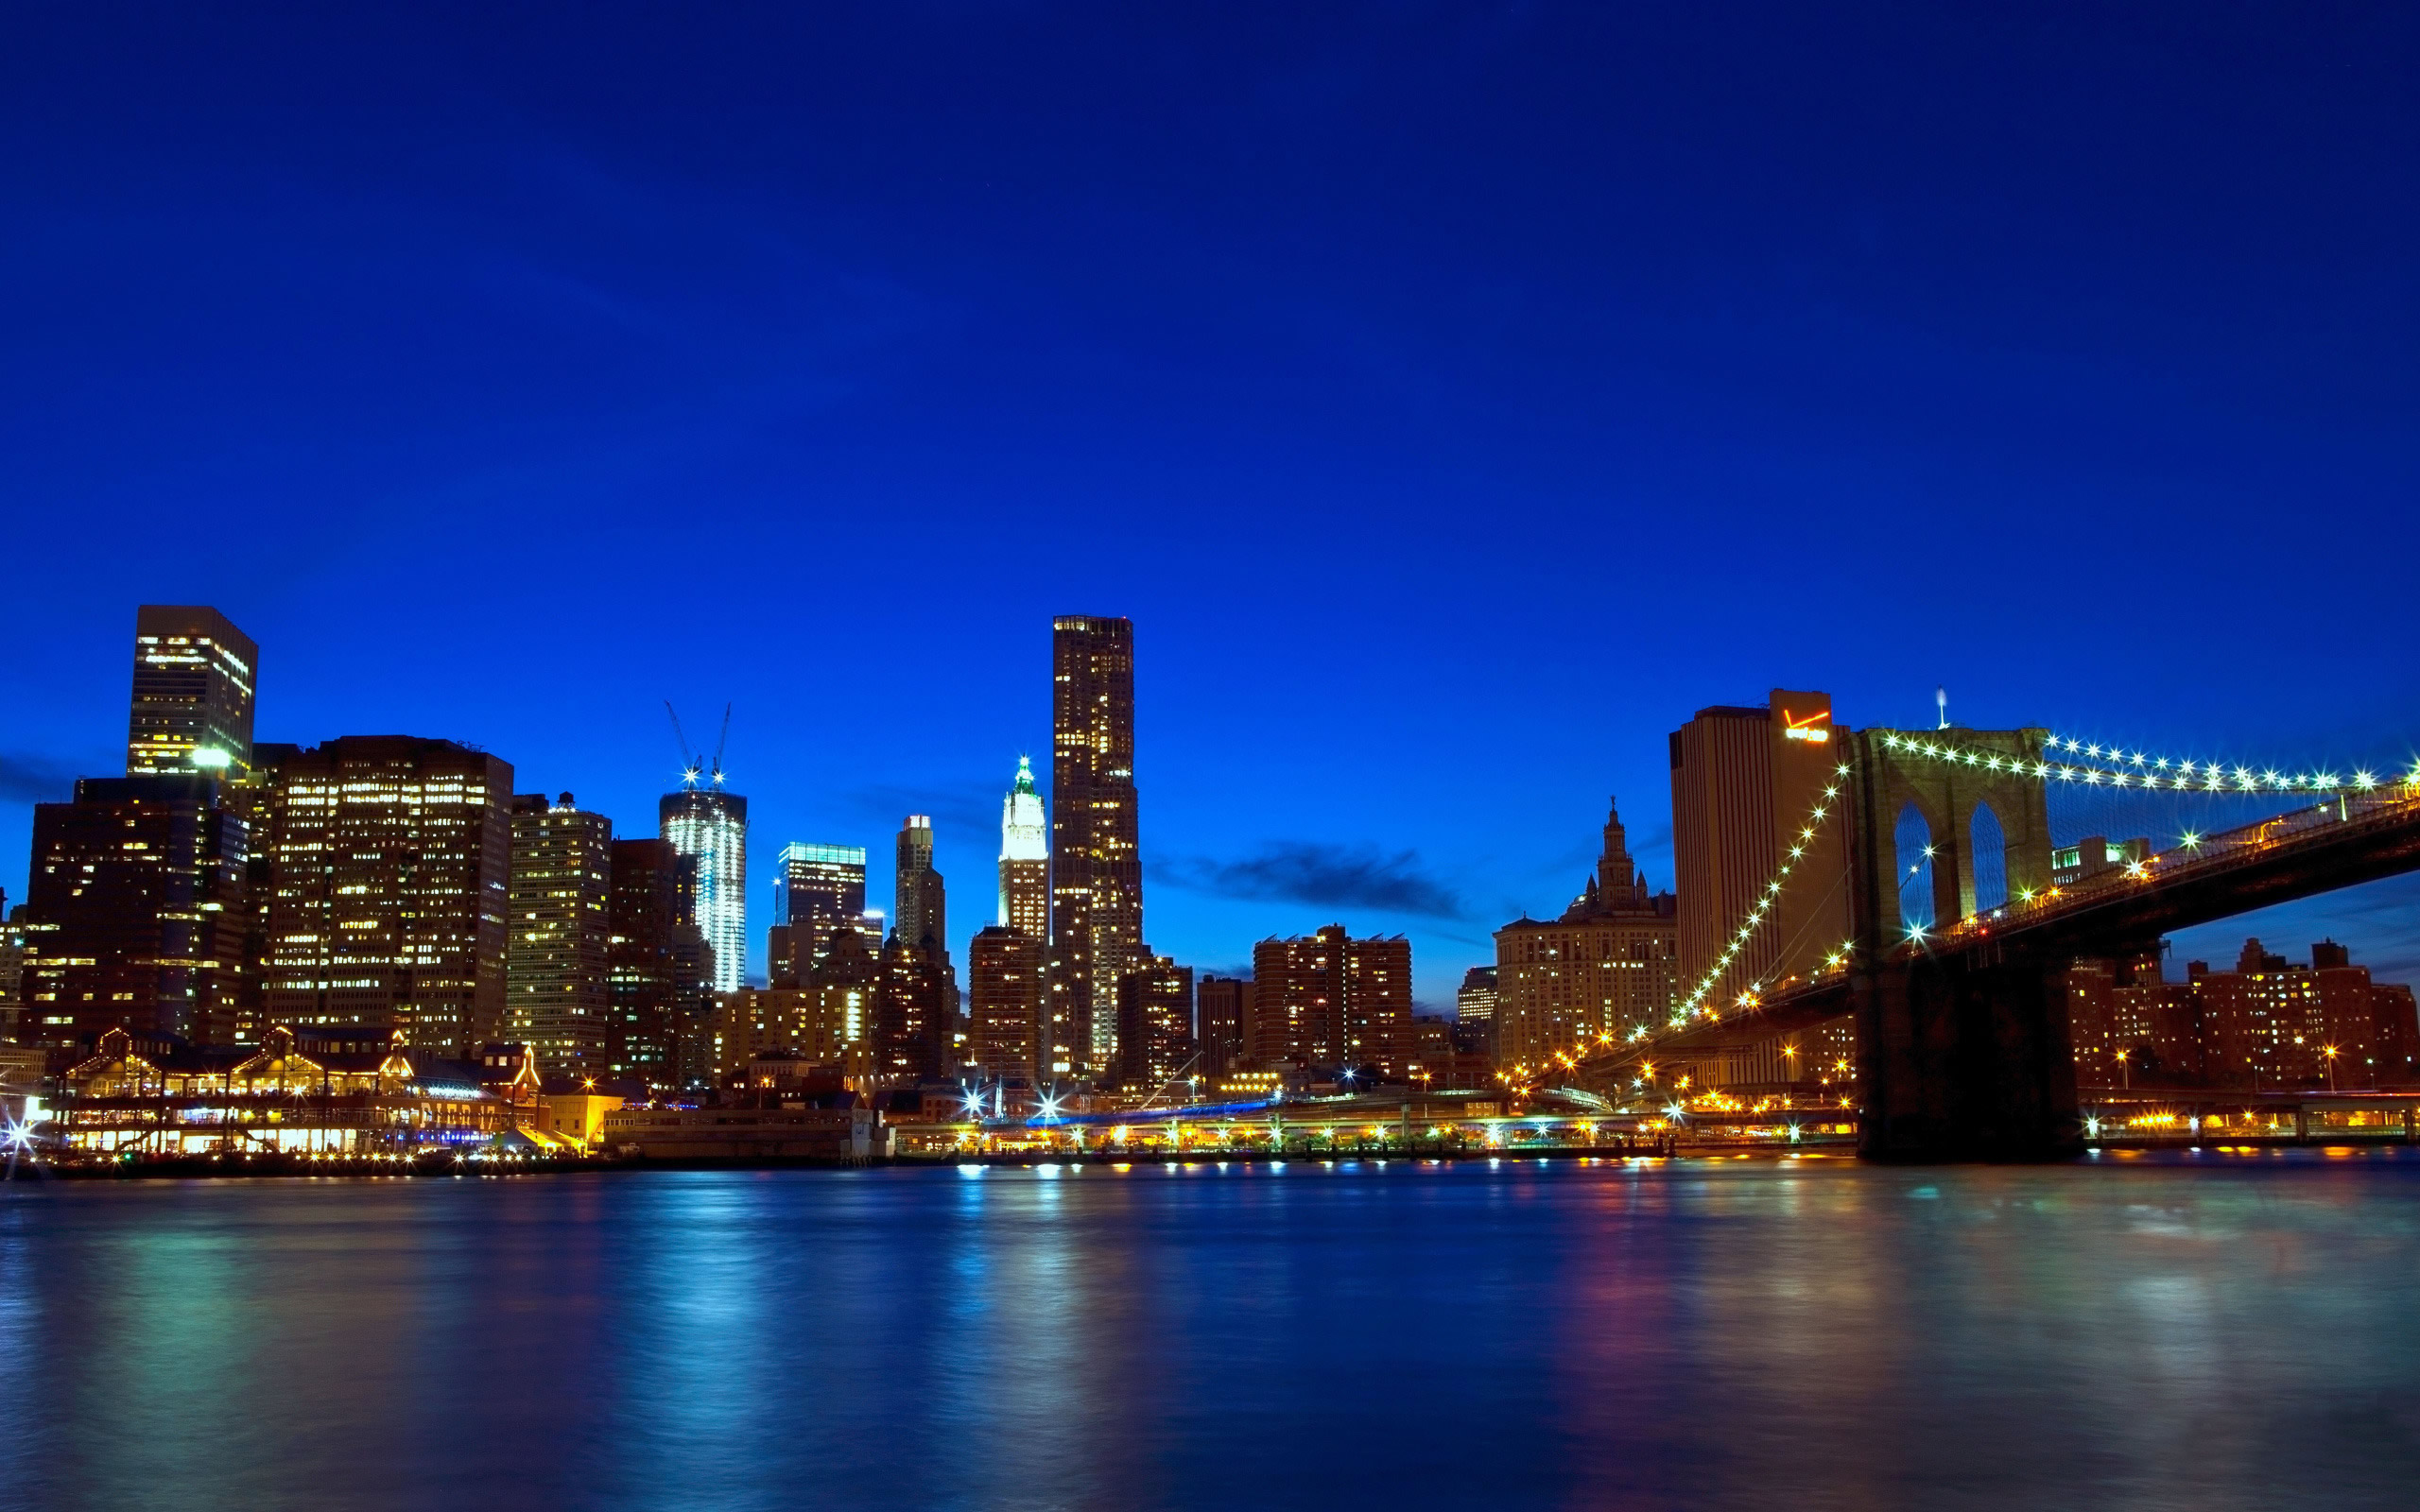 New York HD Wallpapers New York high quality and definition 2560x1600